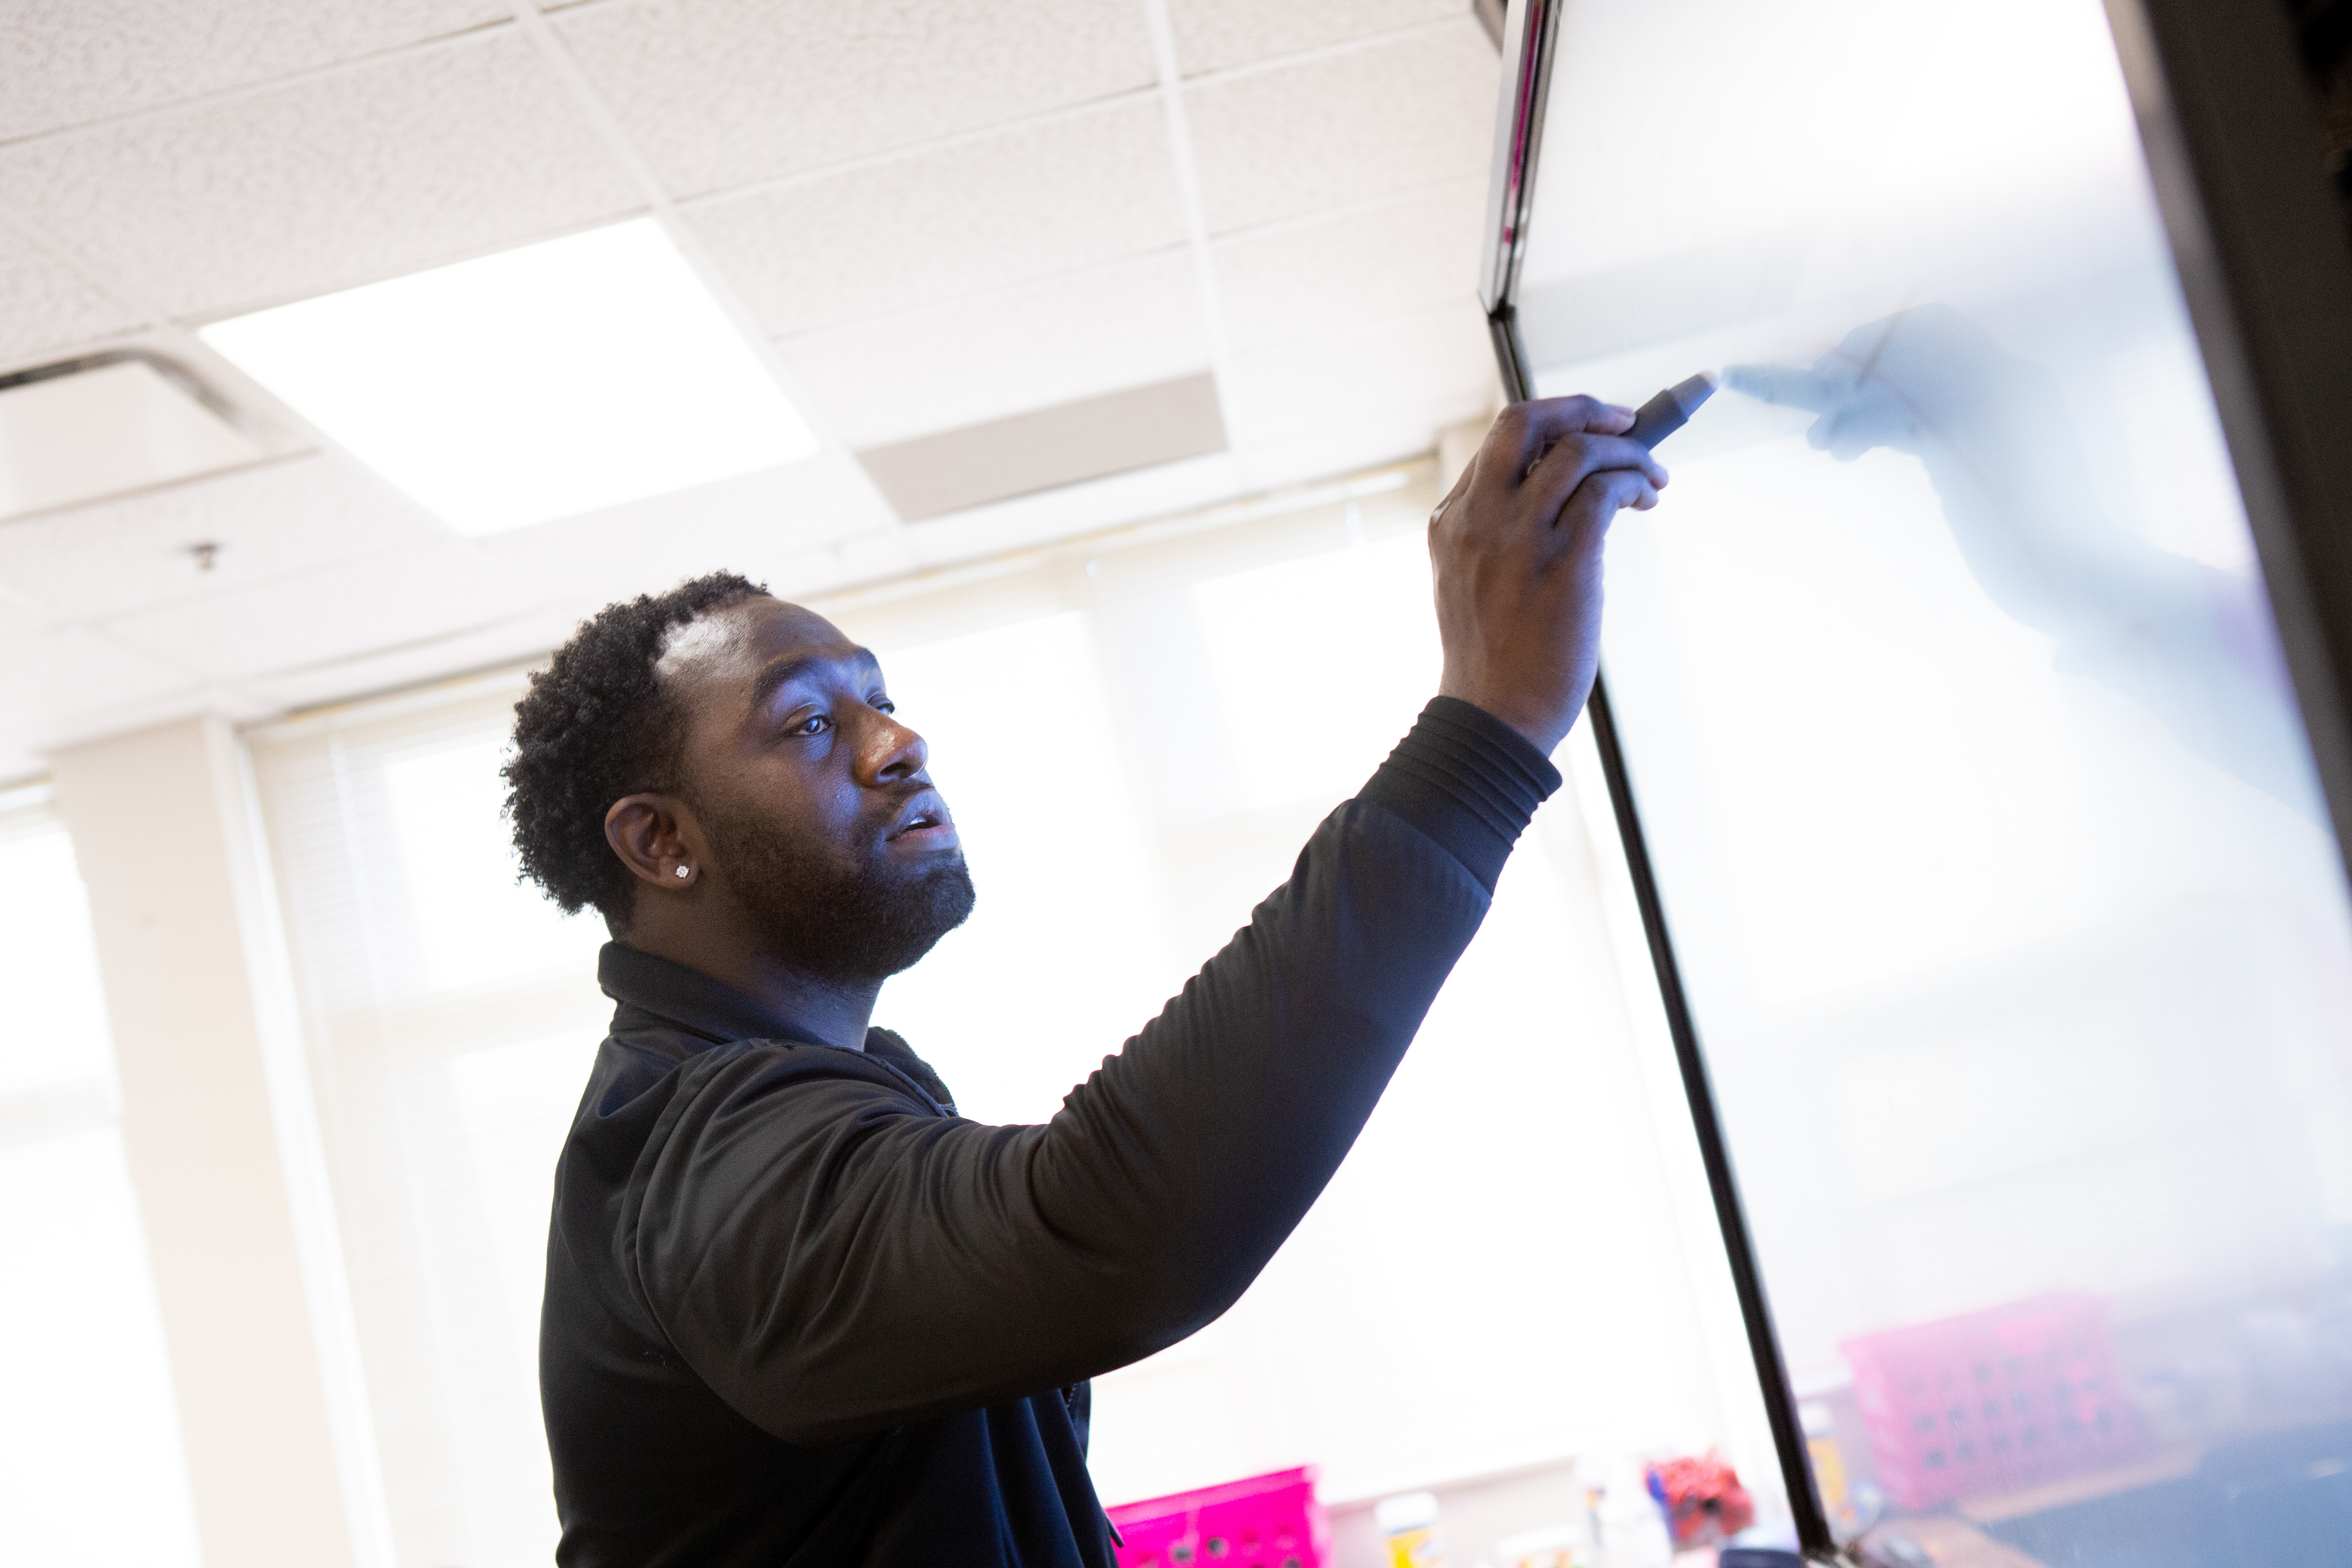 A teacher writes on a white board with a marker inside a bright sunny classroom.